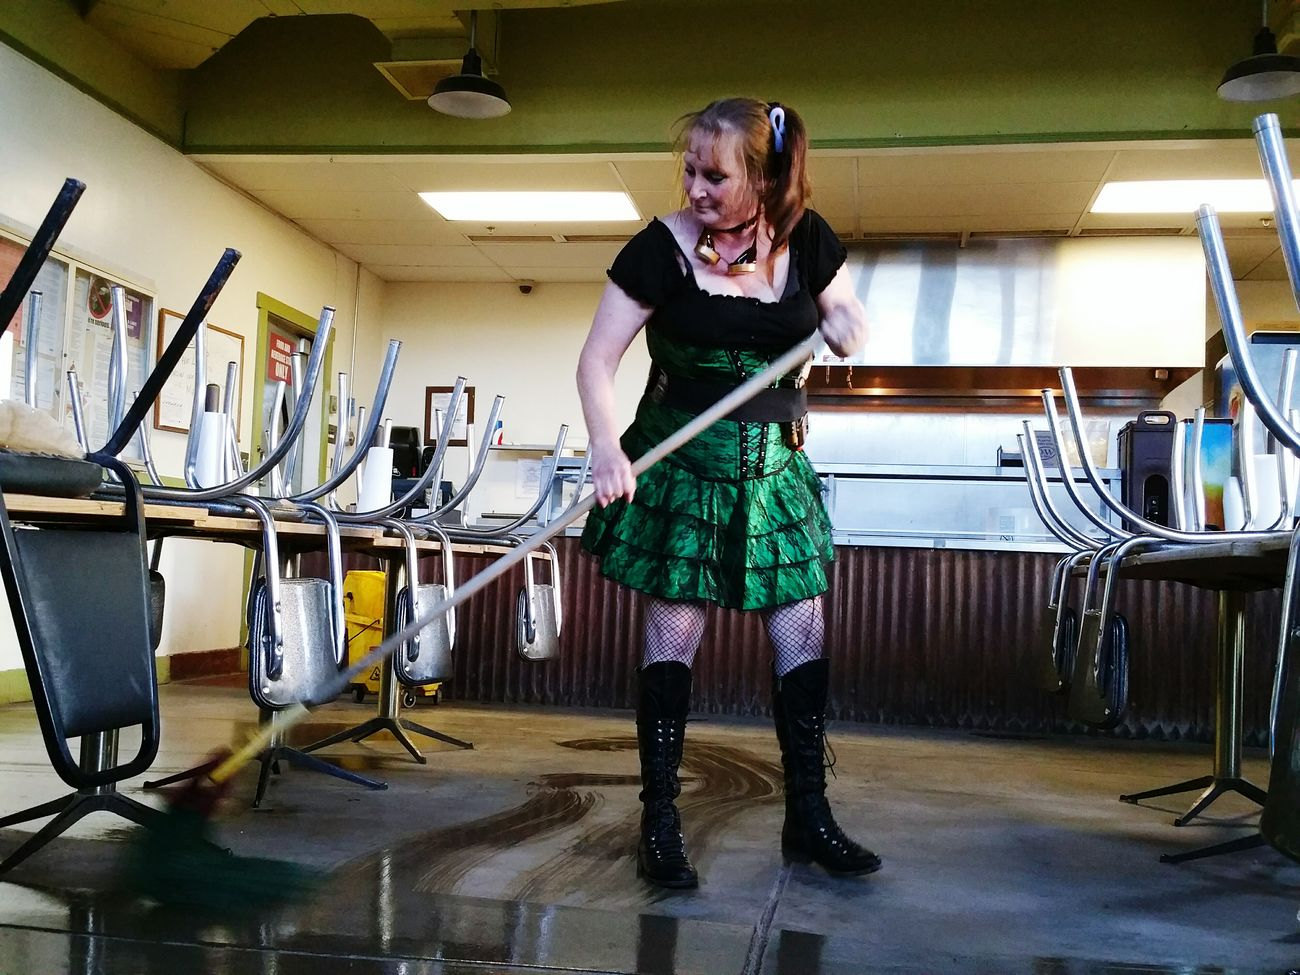 Mopping Happy People Random People Wench Boots Möp Old Tucson Studios Relaxing Green Skirt Wet Floor